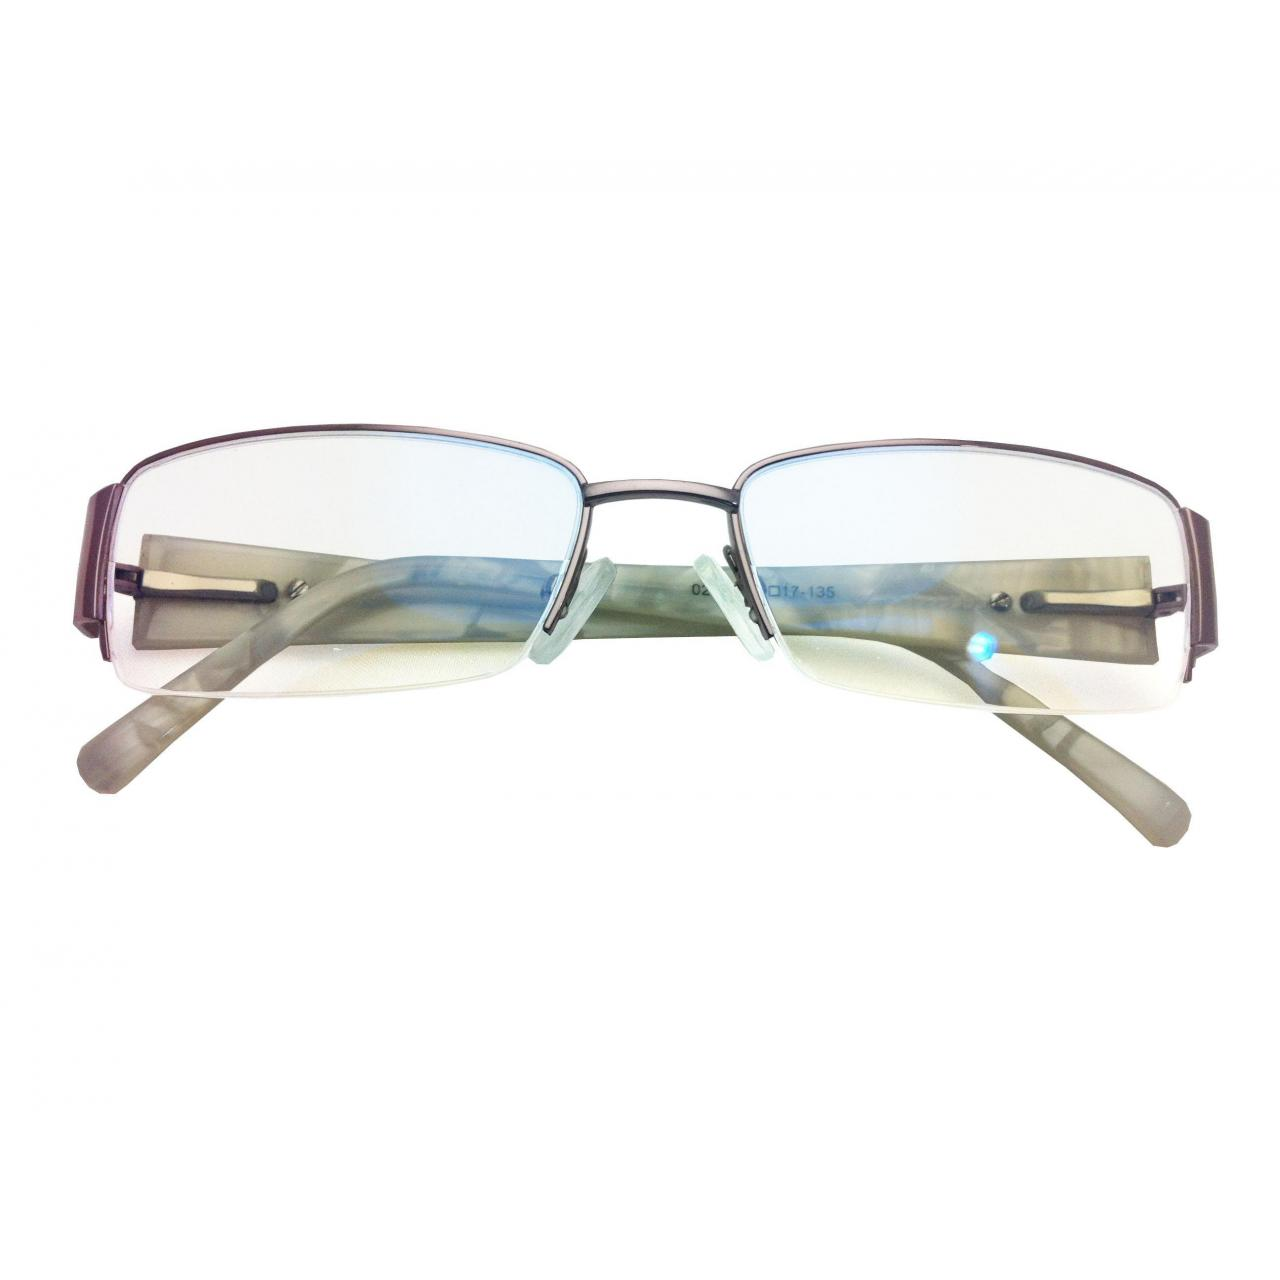 metal eyeglasses frame 02015